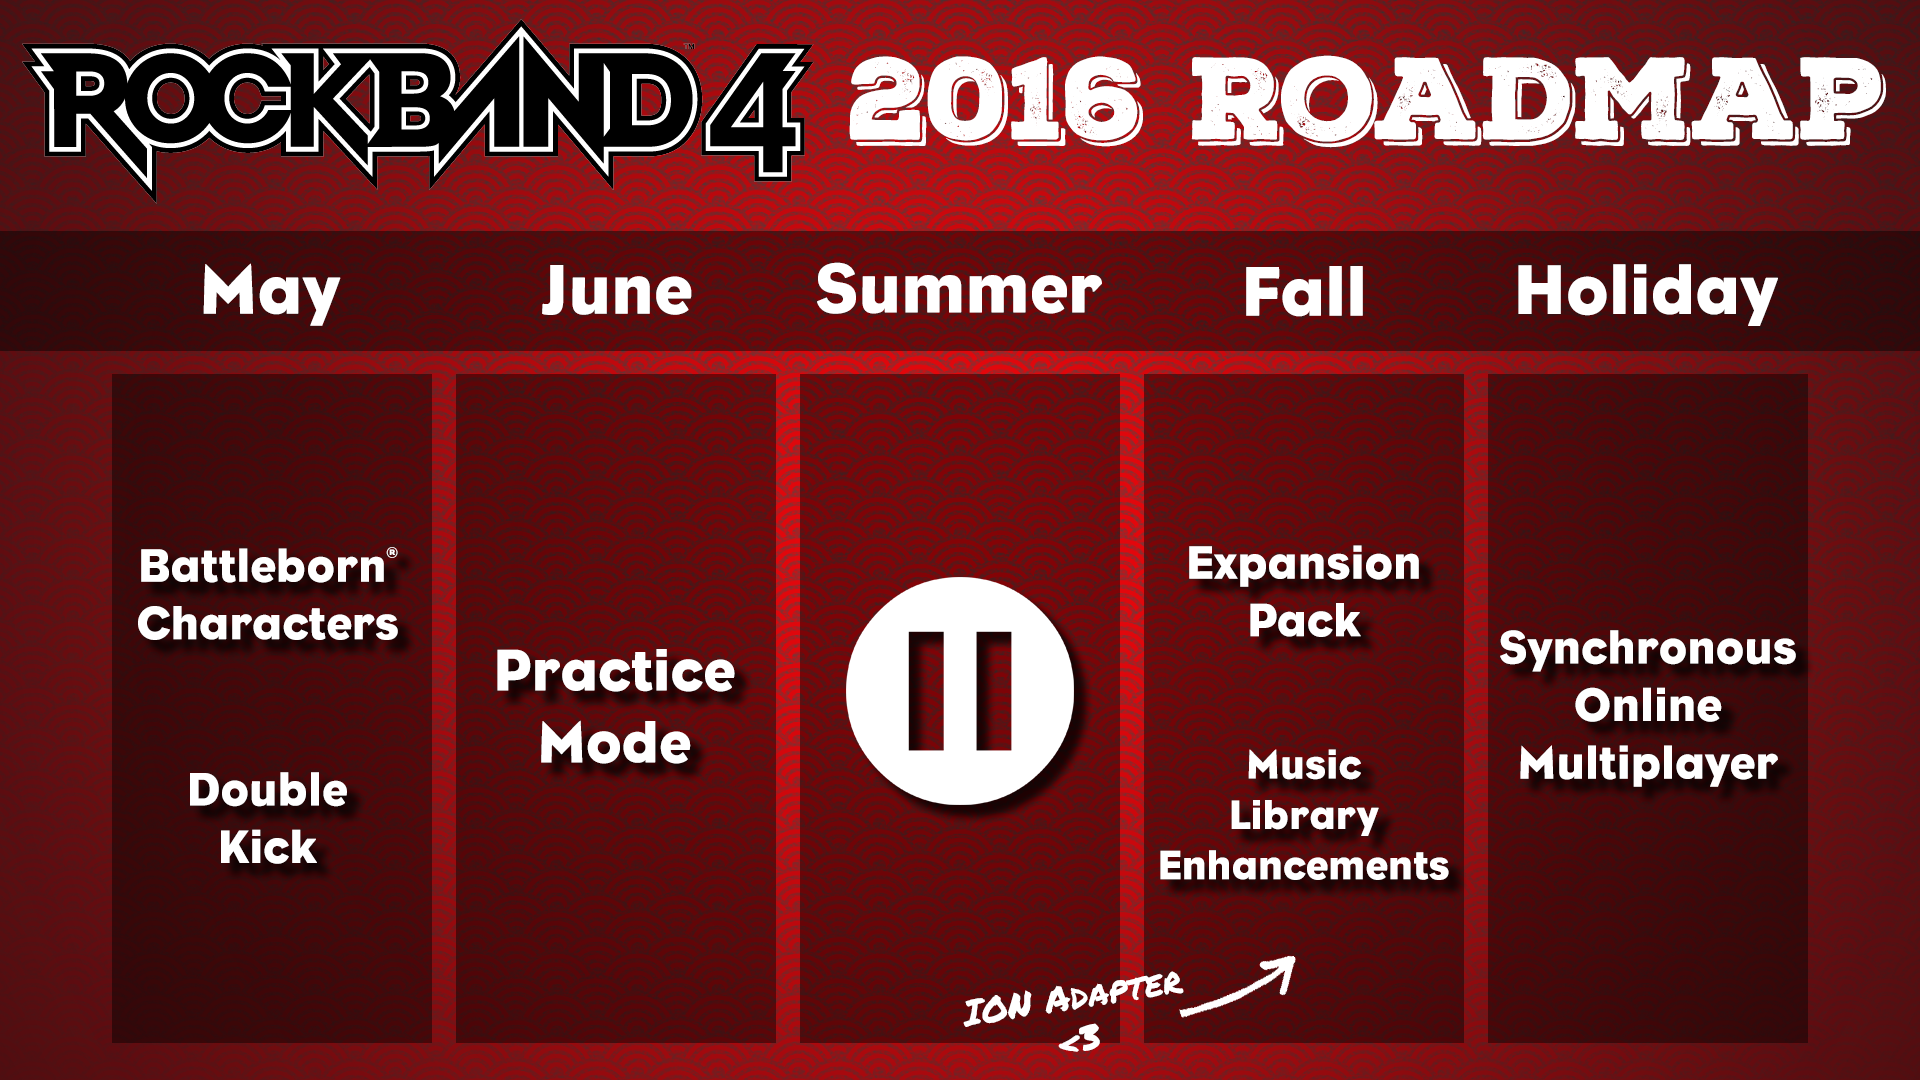 Rock Band 4 2016 Roadmap